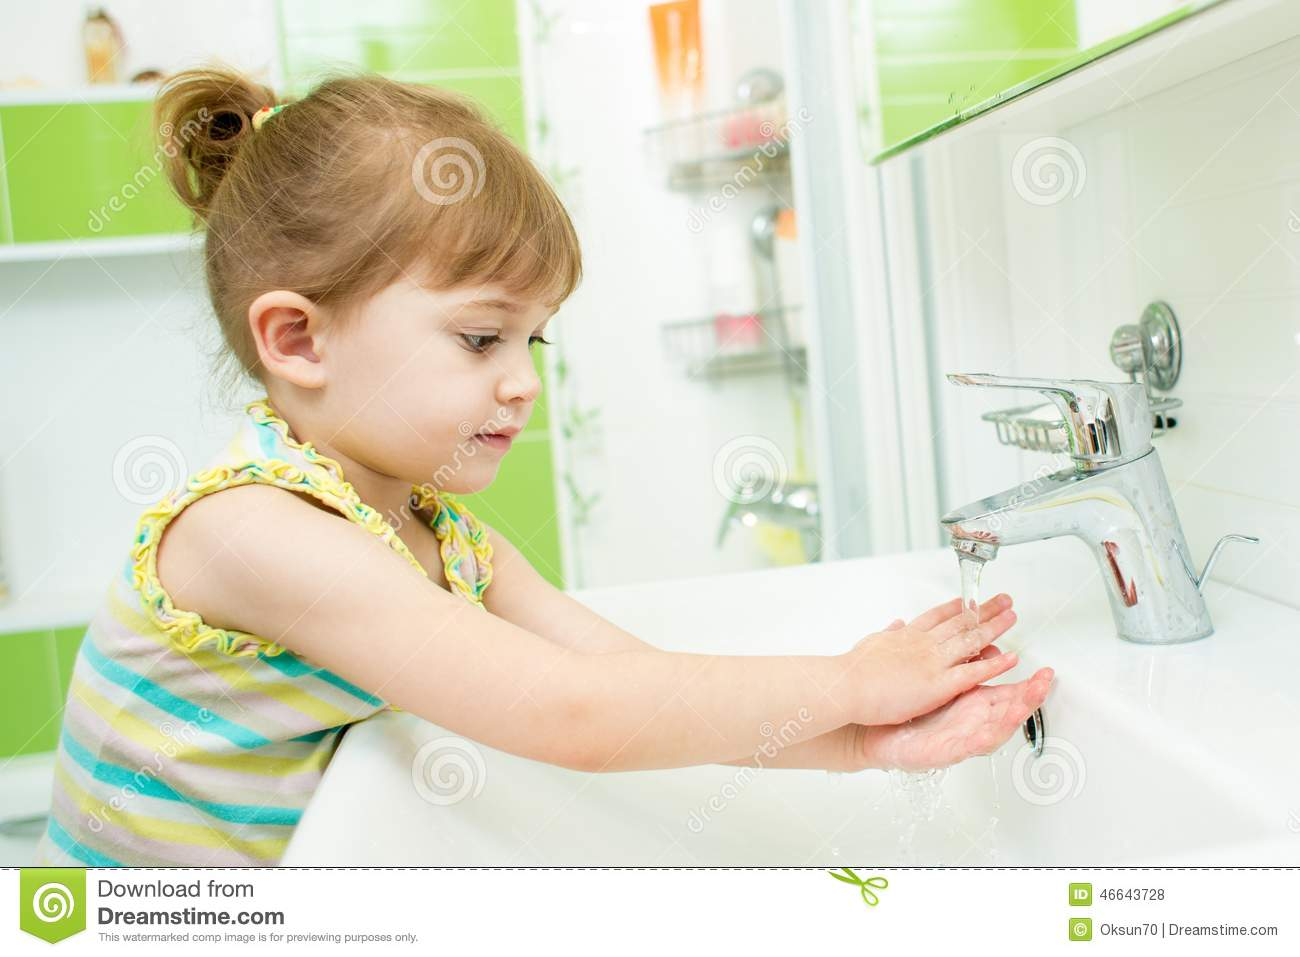 Cute Little Girl Washing Her Hands In Bathroom Stock Photo